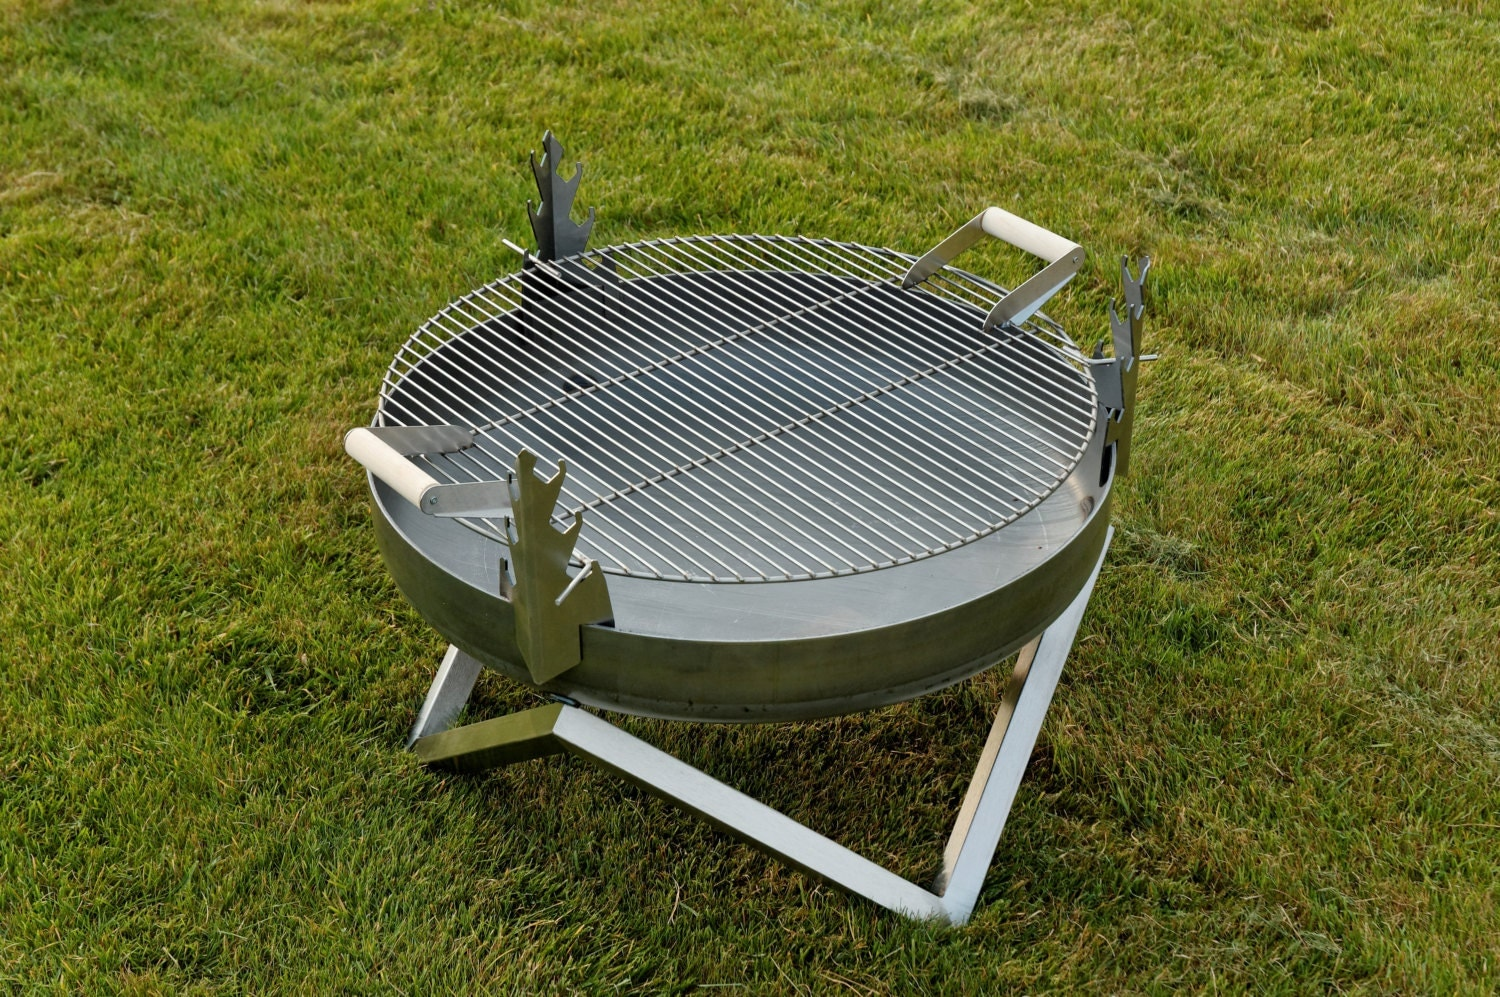 Steel Fire Pit Yanartas With A Stainless Steel Grill Grate